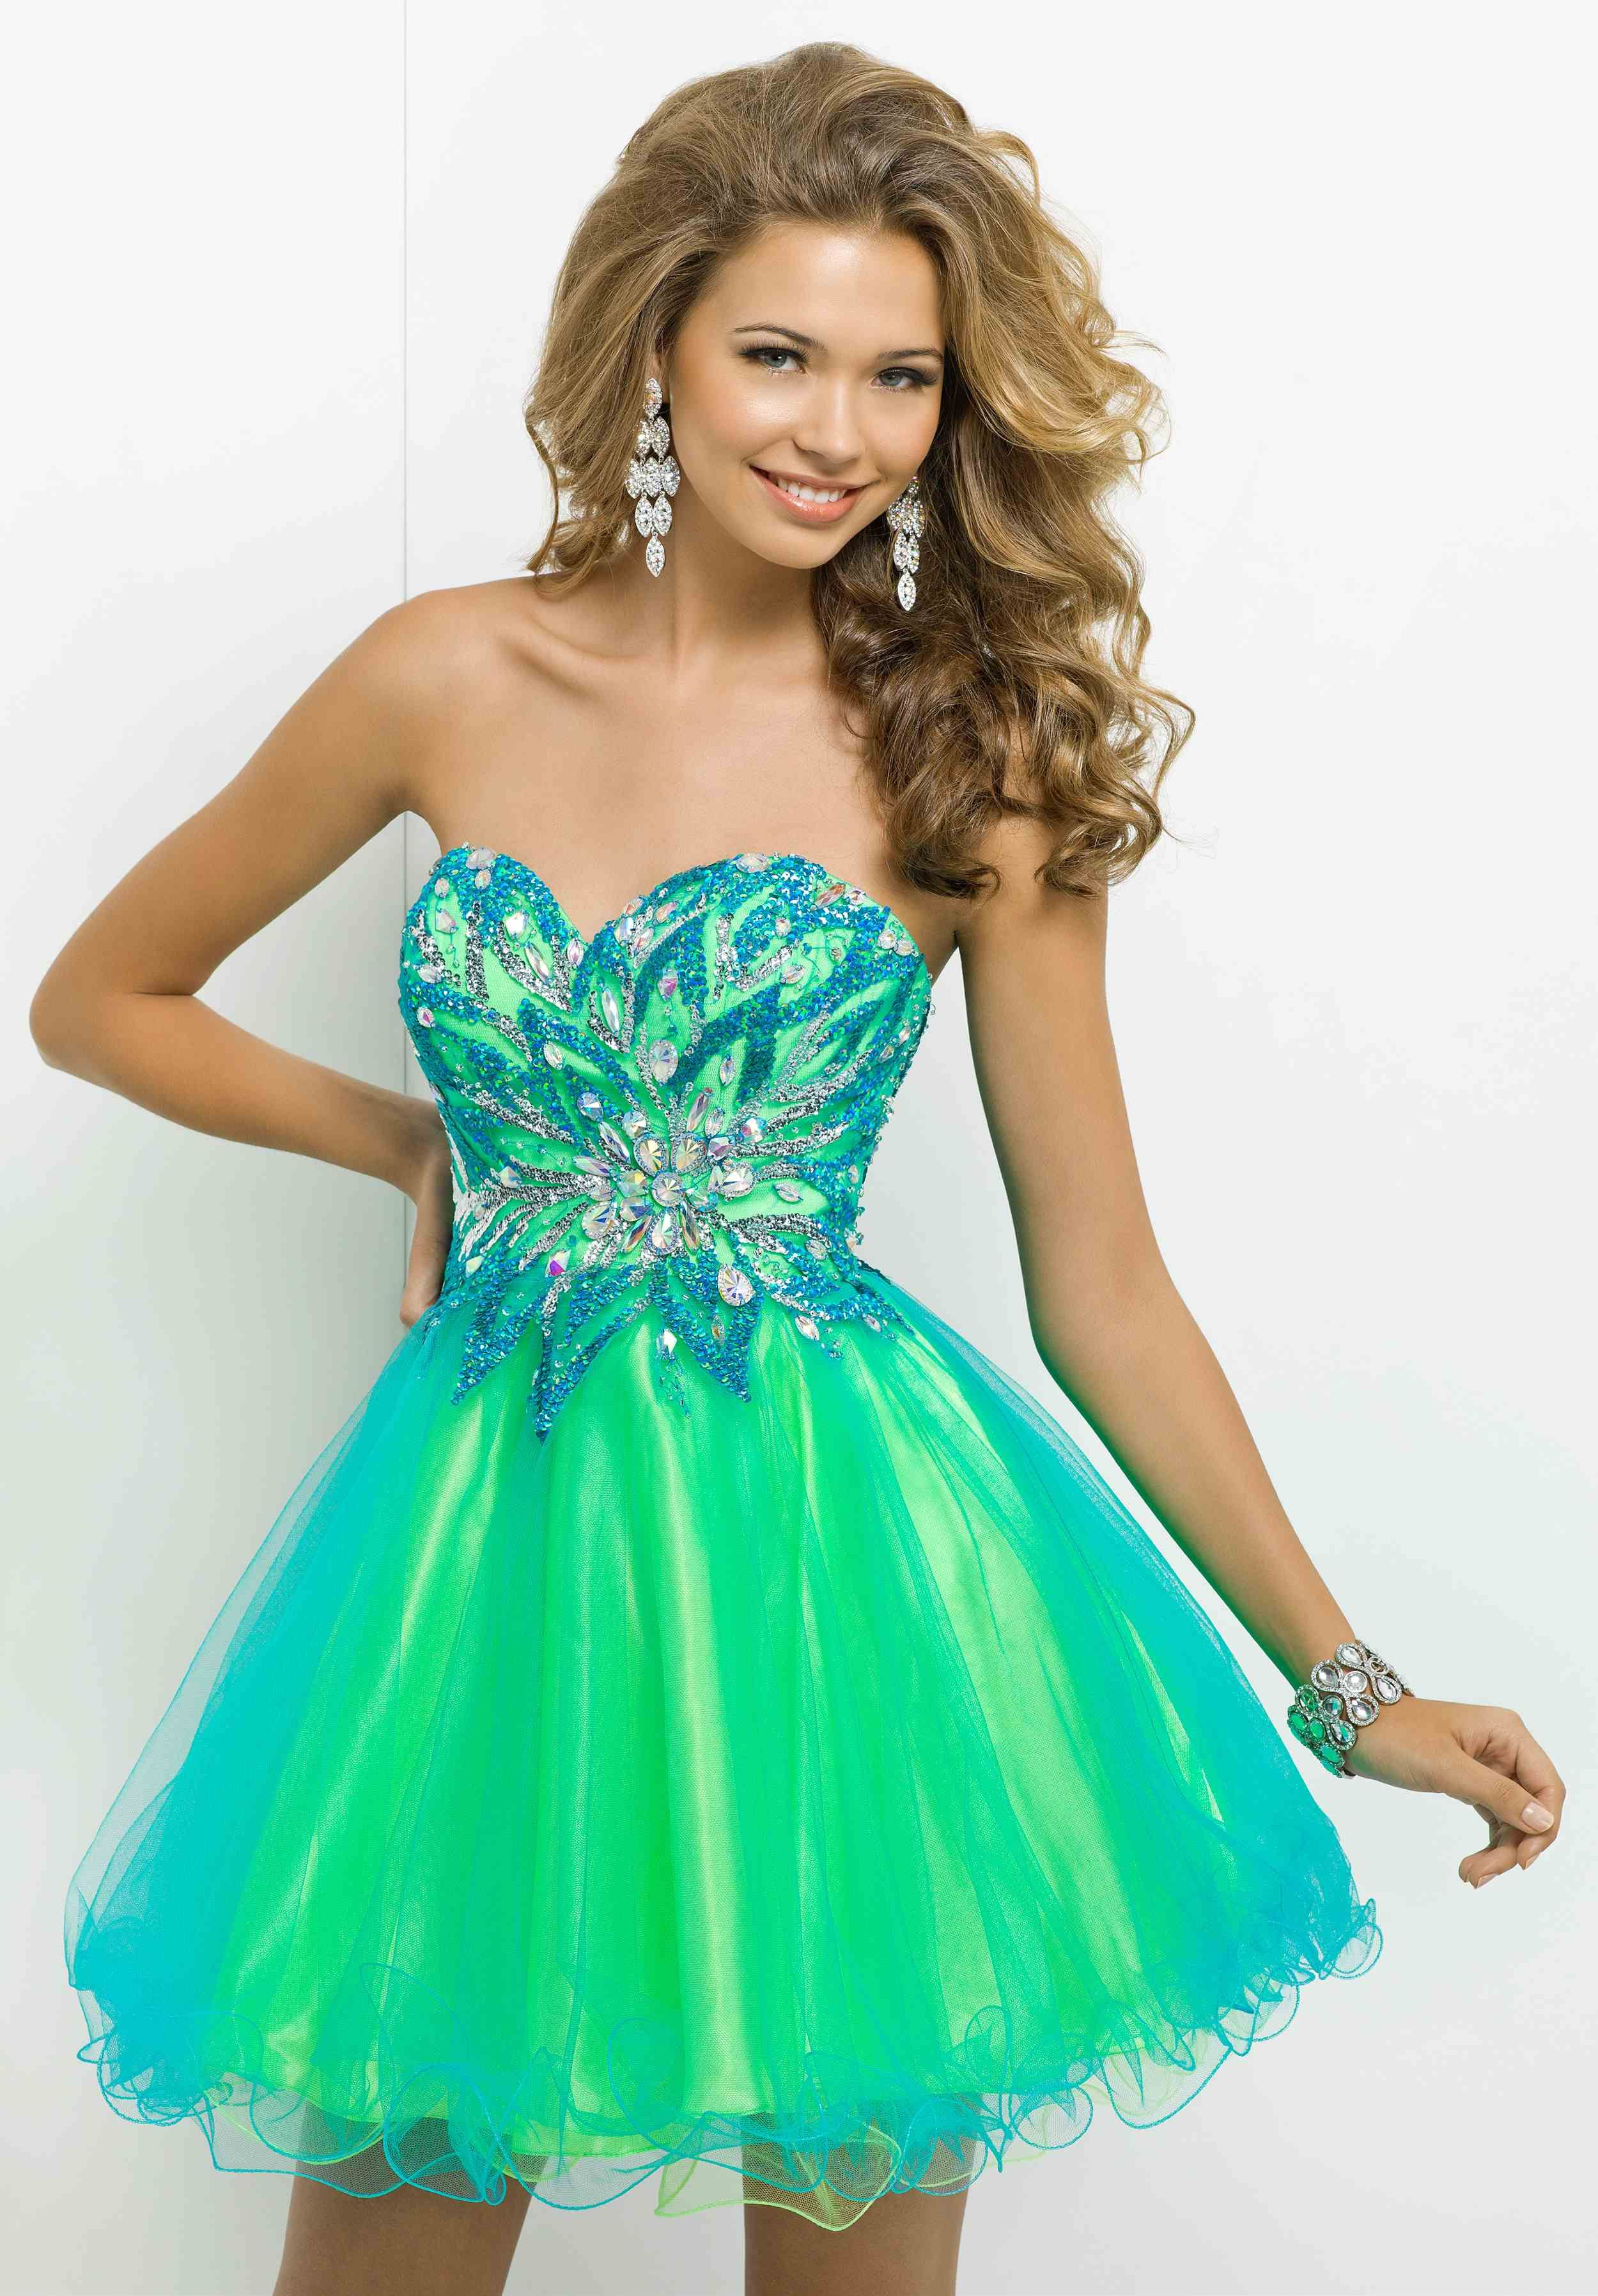 Green and turquoise bridesmaid ideas pinterest turquoise prom